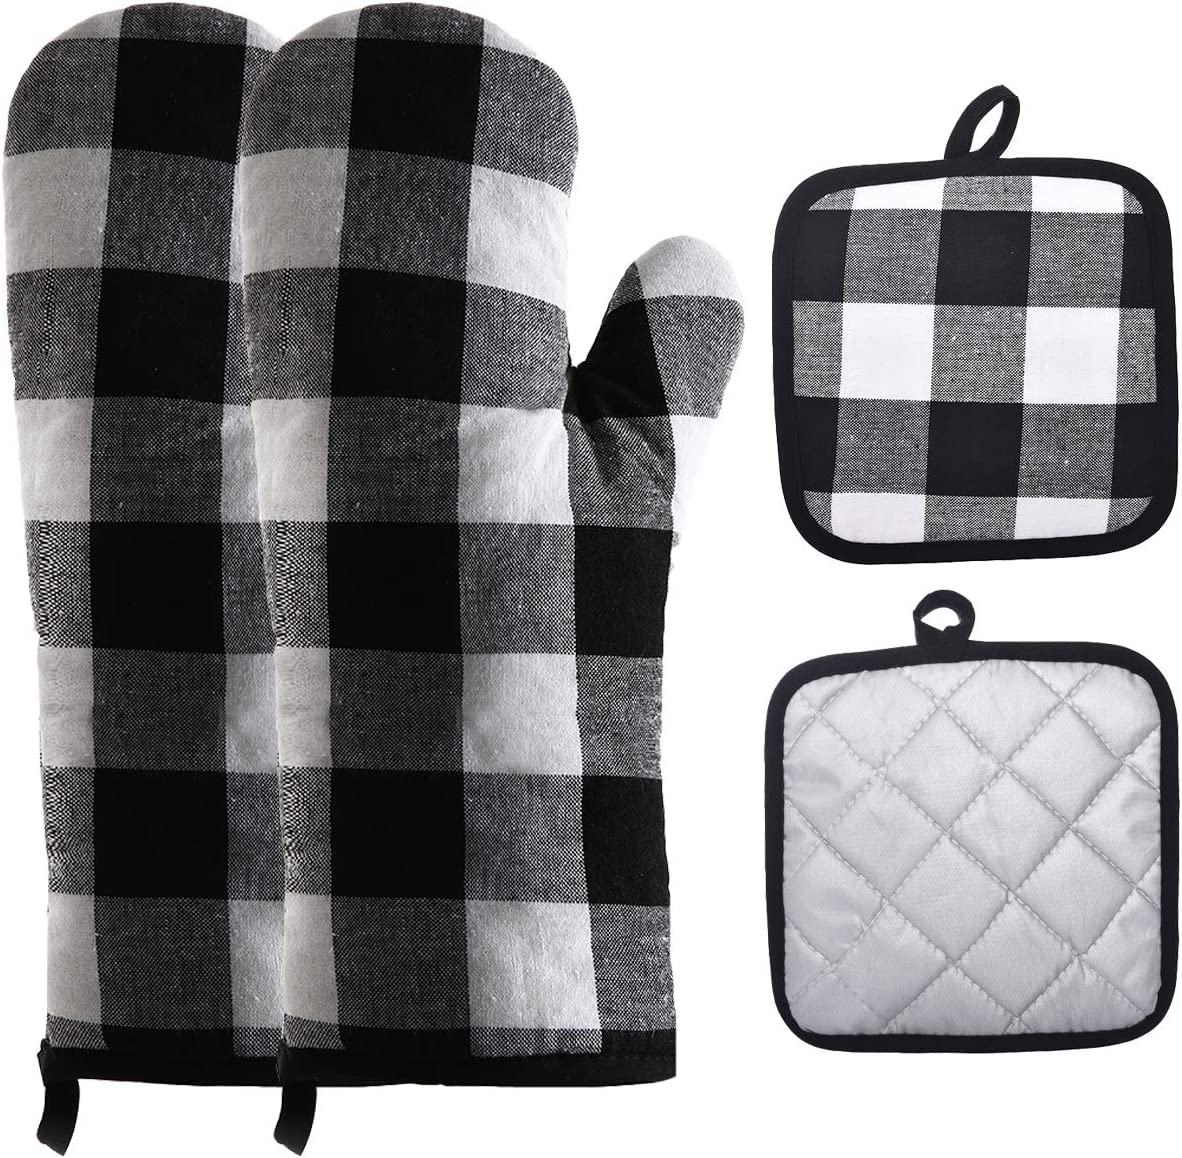 4-Piece Set,Black//White Win Change Oven Mitts and Pot Holders-Oven Mitts and Potholders Soft Cotton Plaid Design Lining Non Slip Oven Mitt Set for Kitchen Cooking Baking Grilling